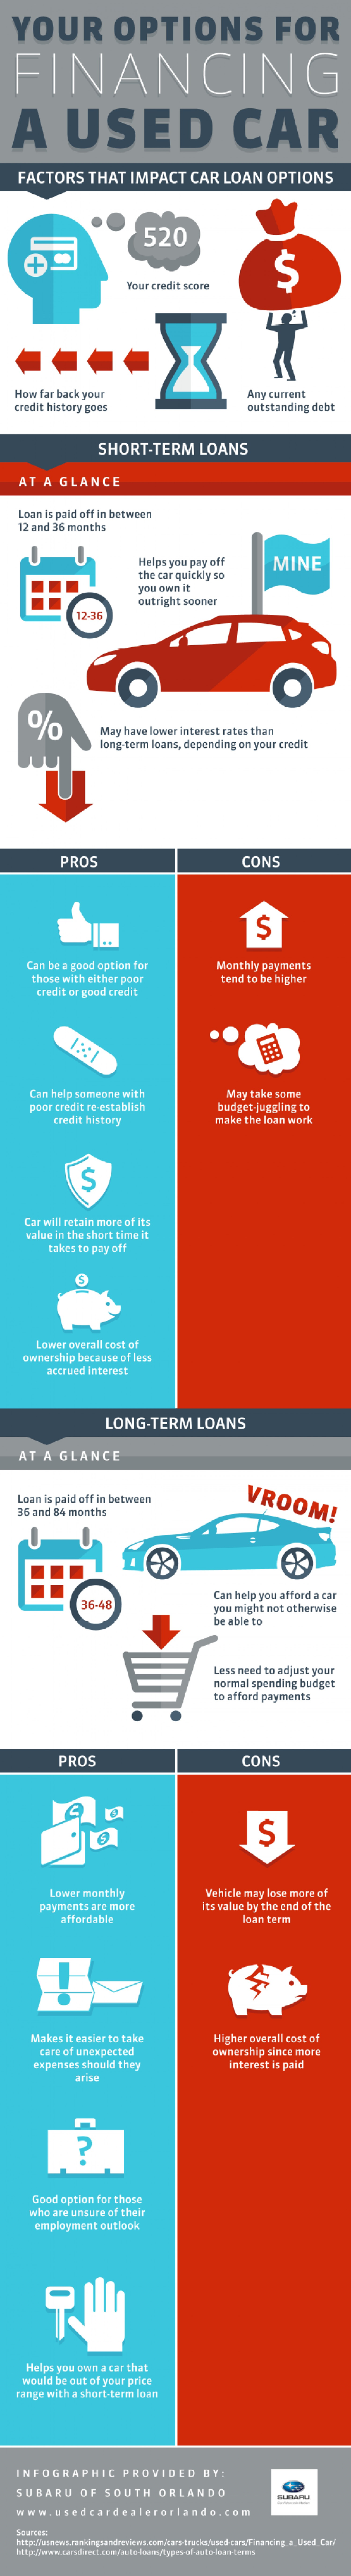 your options for financing a used car infographic